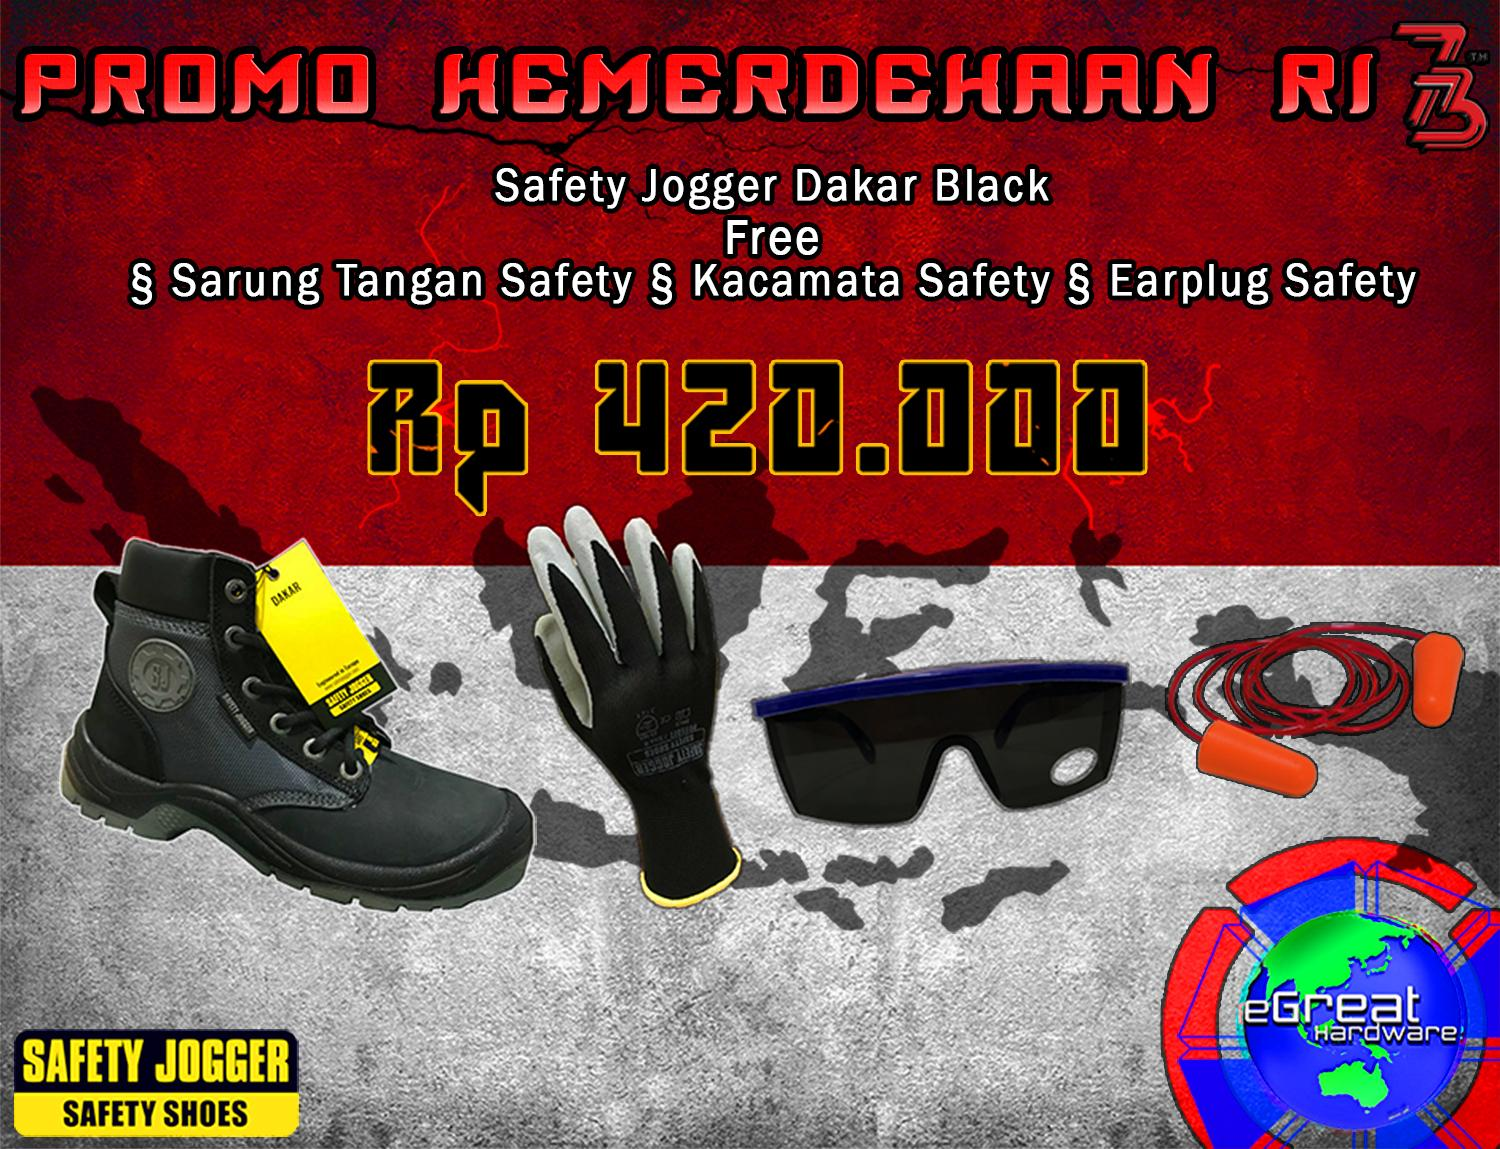 Promo Paket Safety Shoes Dakar Black Safety Jogger